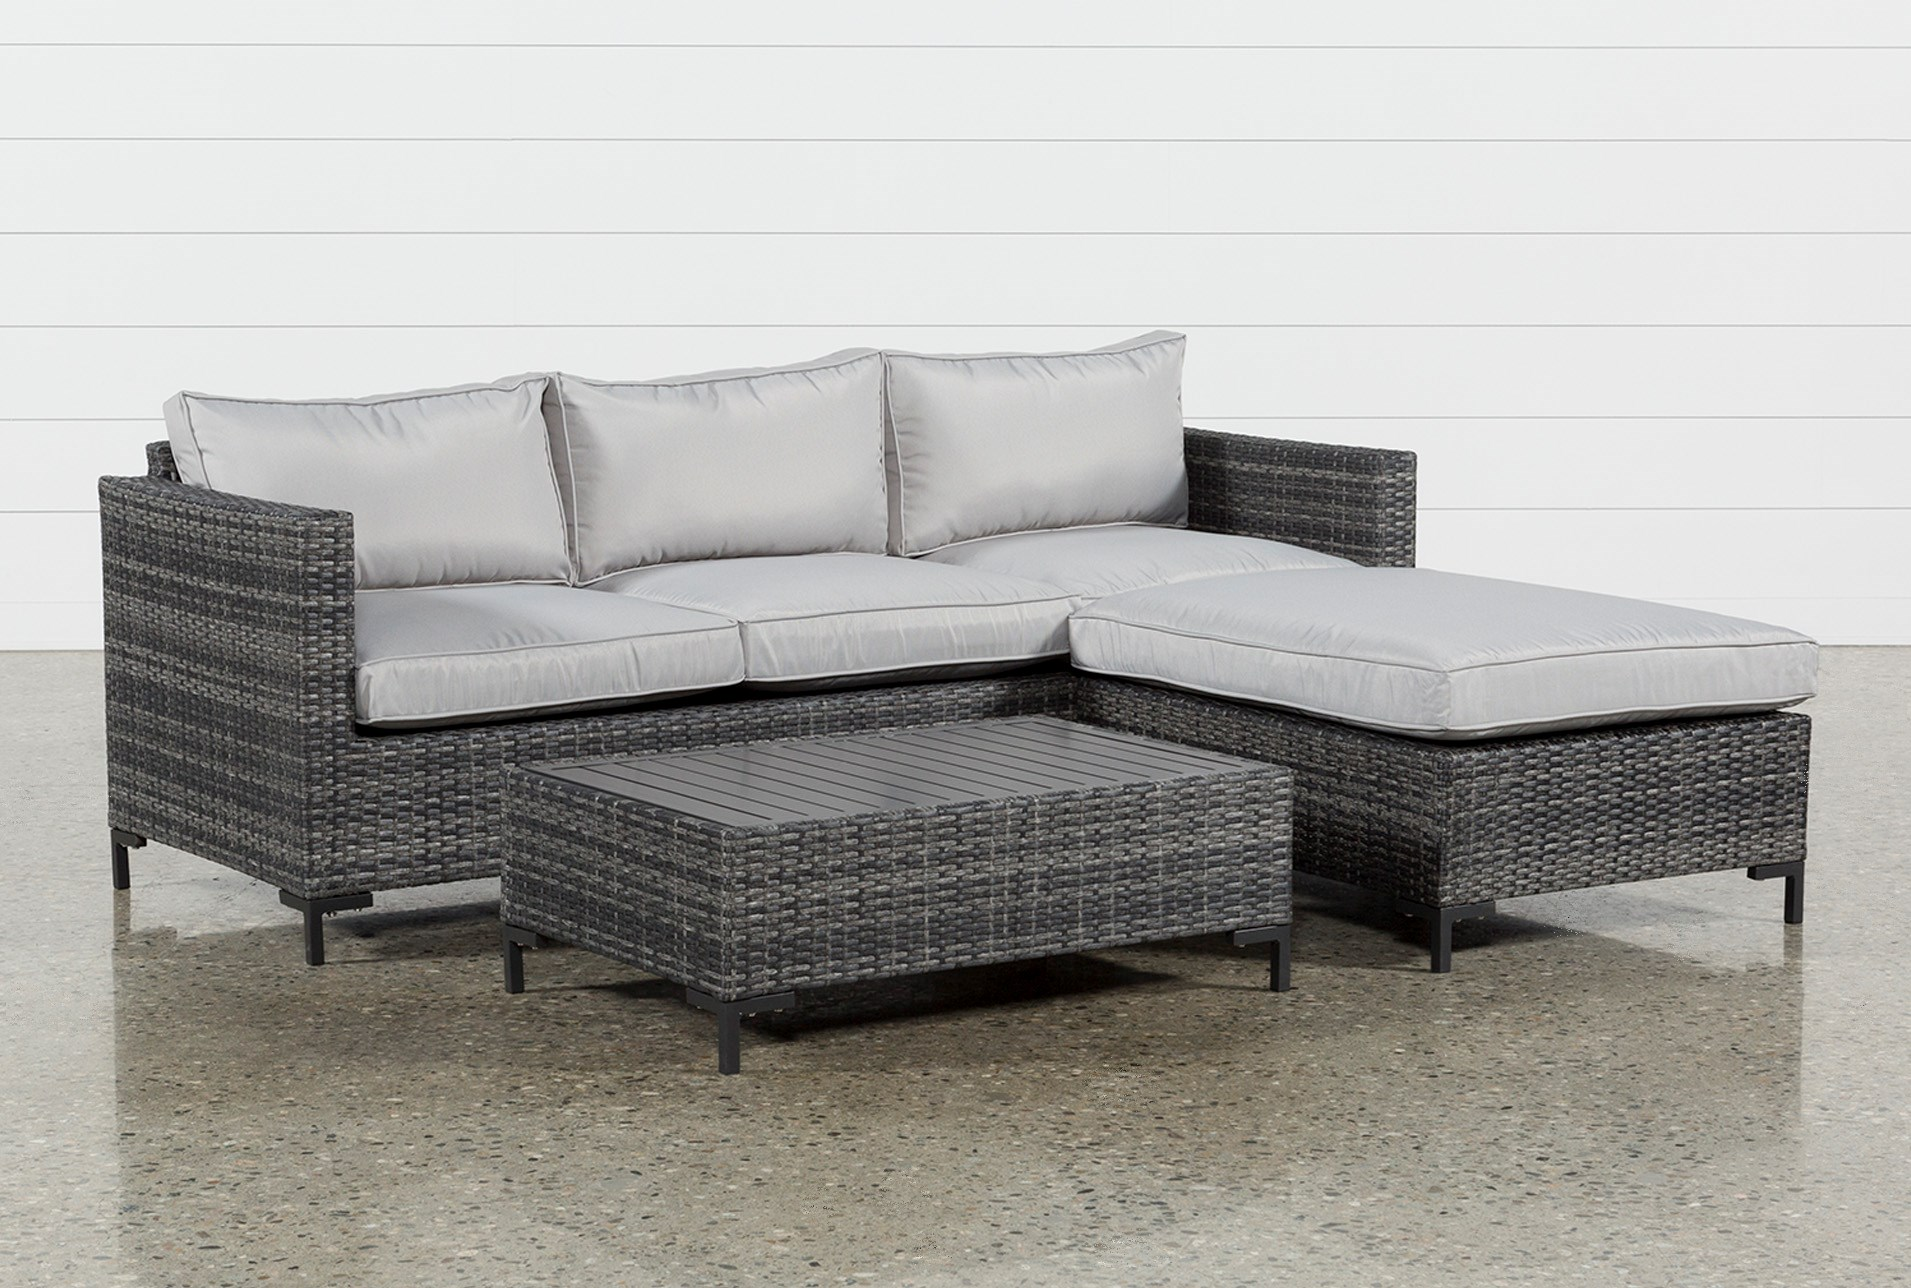 Outdoor domingo ii sofa w reversible chaise coffee table qty 1 has been successfully added to your cart